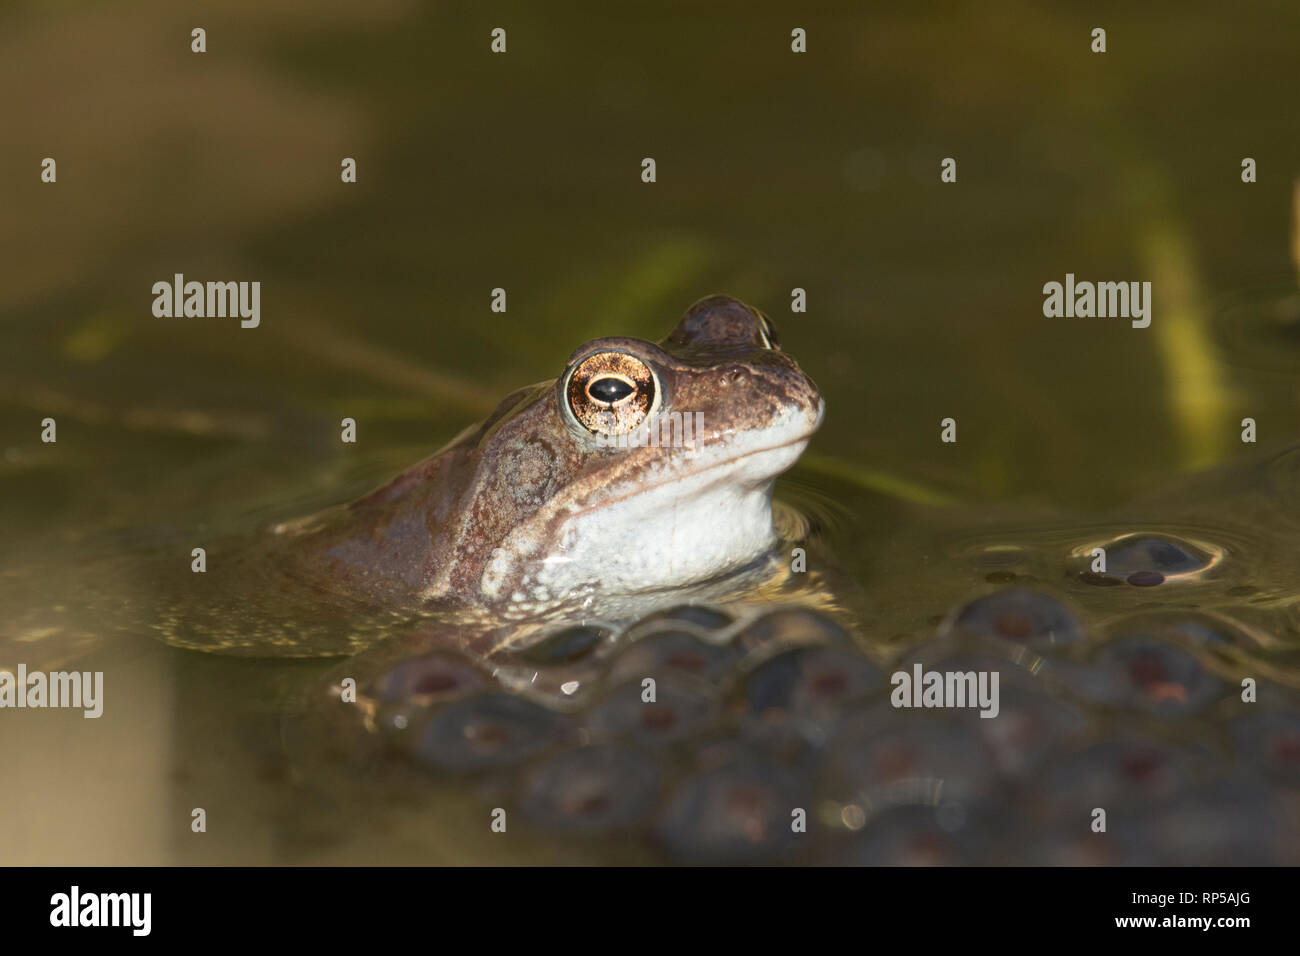 Common Frog, Rana temporaria, Male, waiting on frog spawn in breeding pond for females to arrive for spawning, February, garden pond Stock Photo